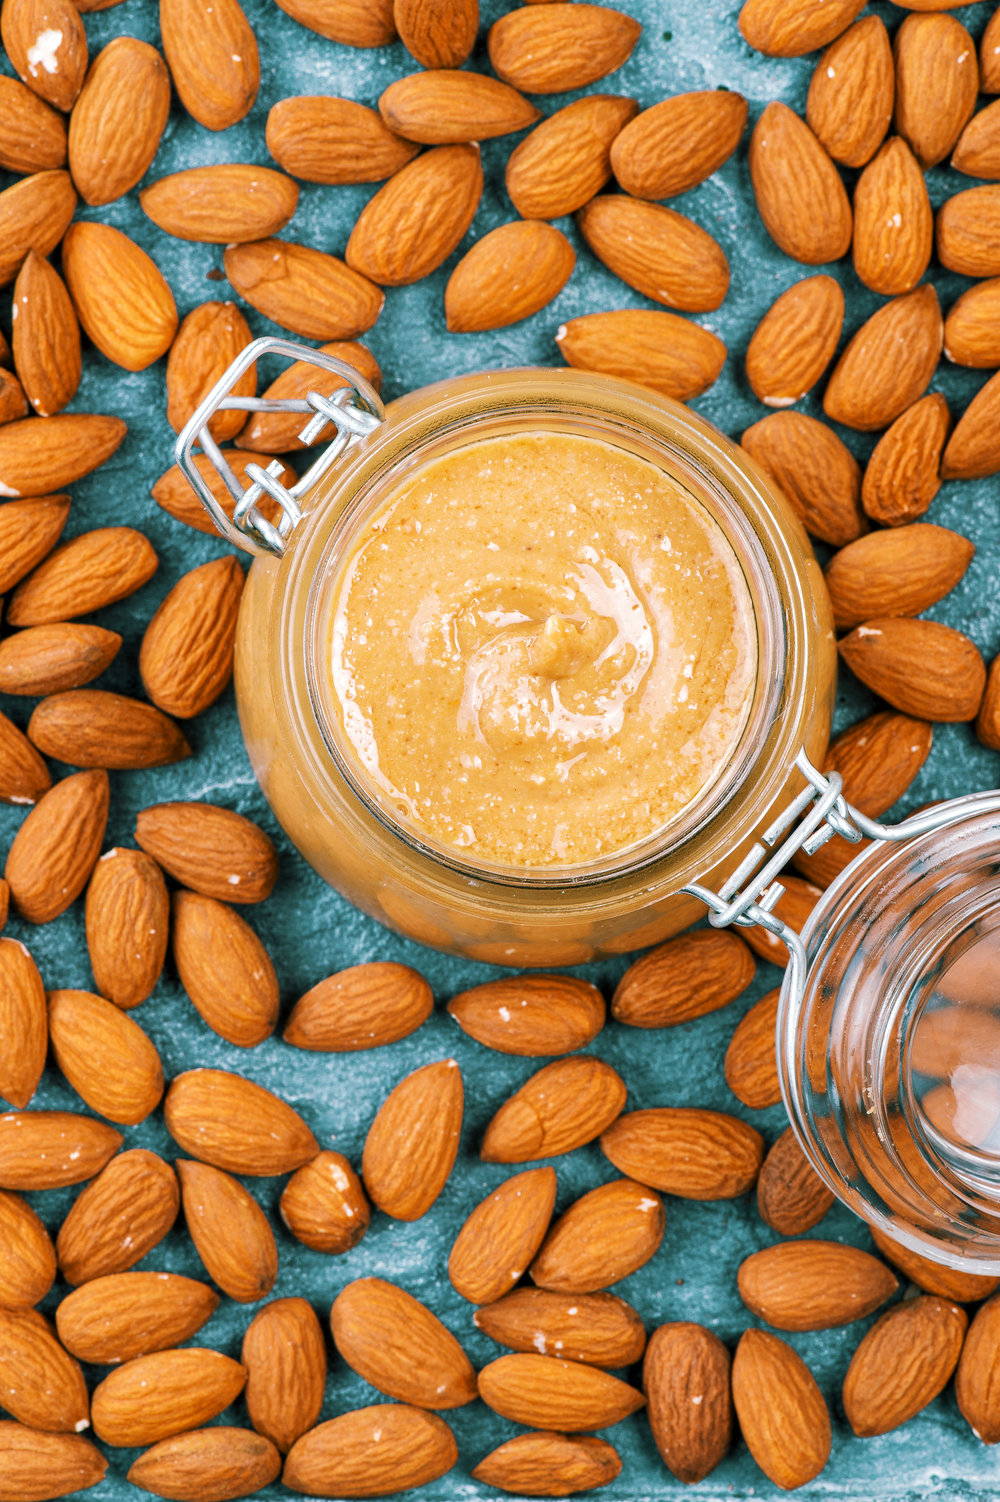 peanutt butter, almond butter, raw food, tasty, healthy, omega 3, fat, salty, food photography, Justyna Pankowska, studio meksyk, healthy blog, recipe.4.jpg